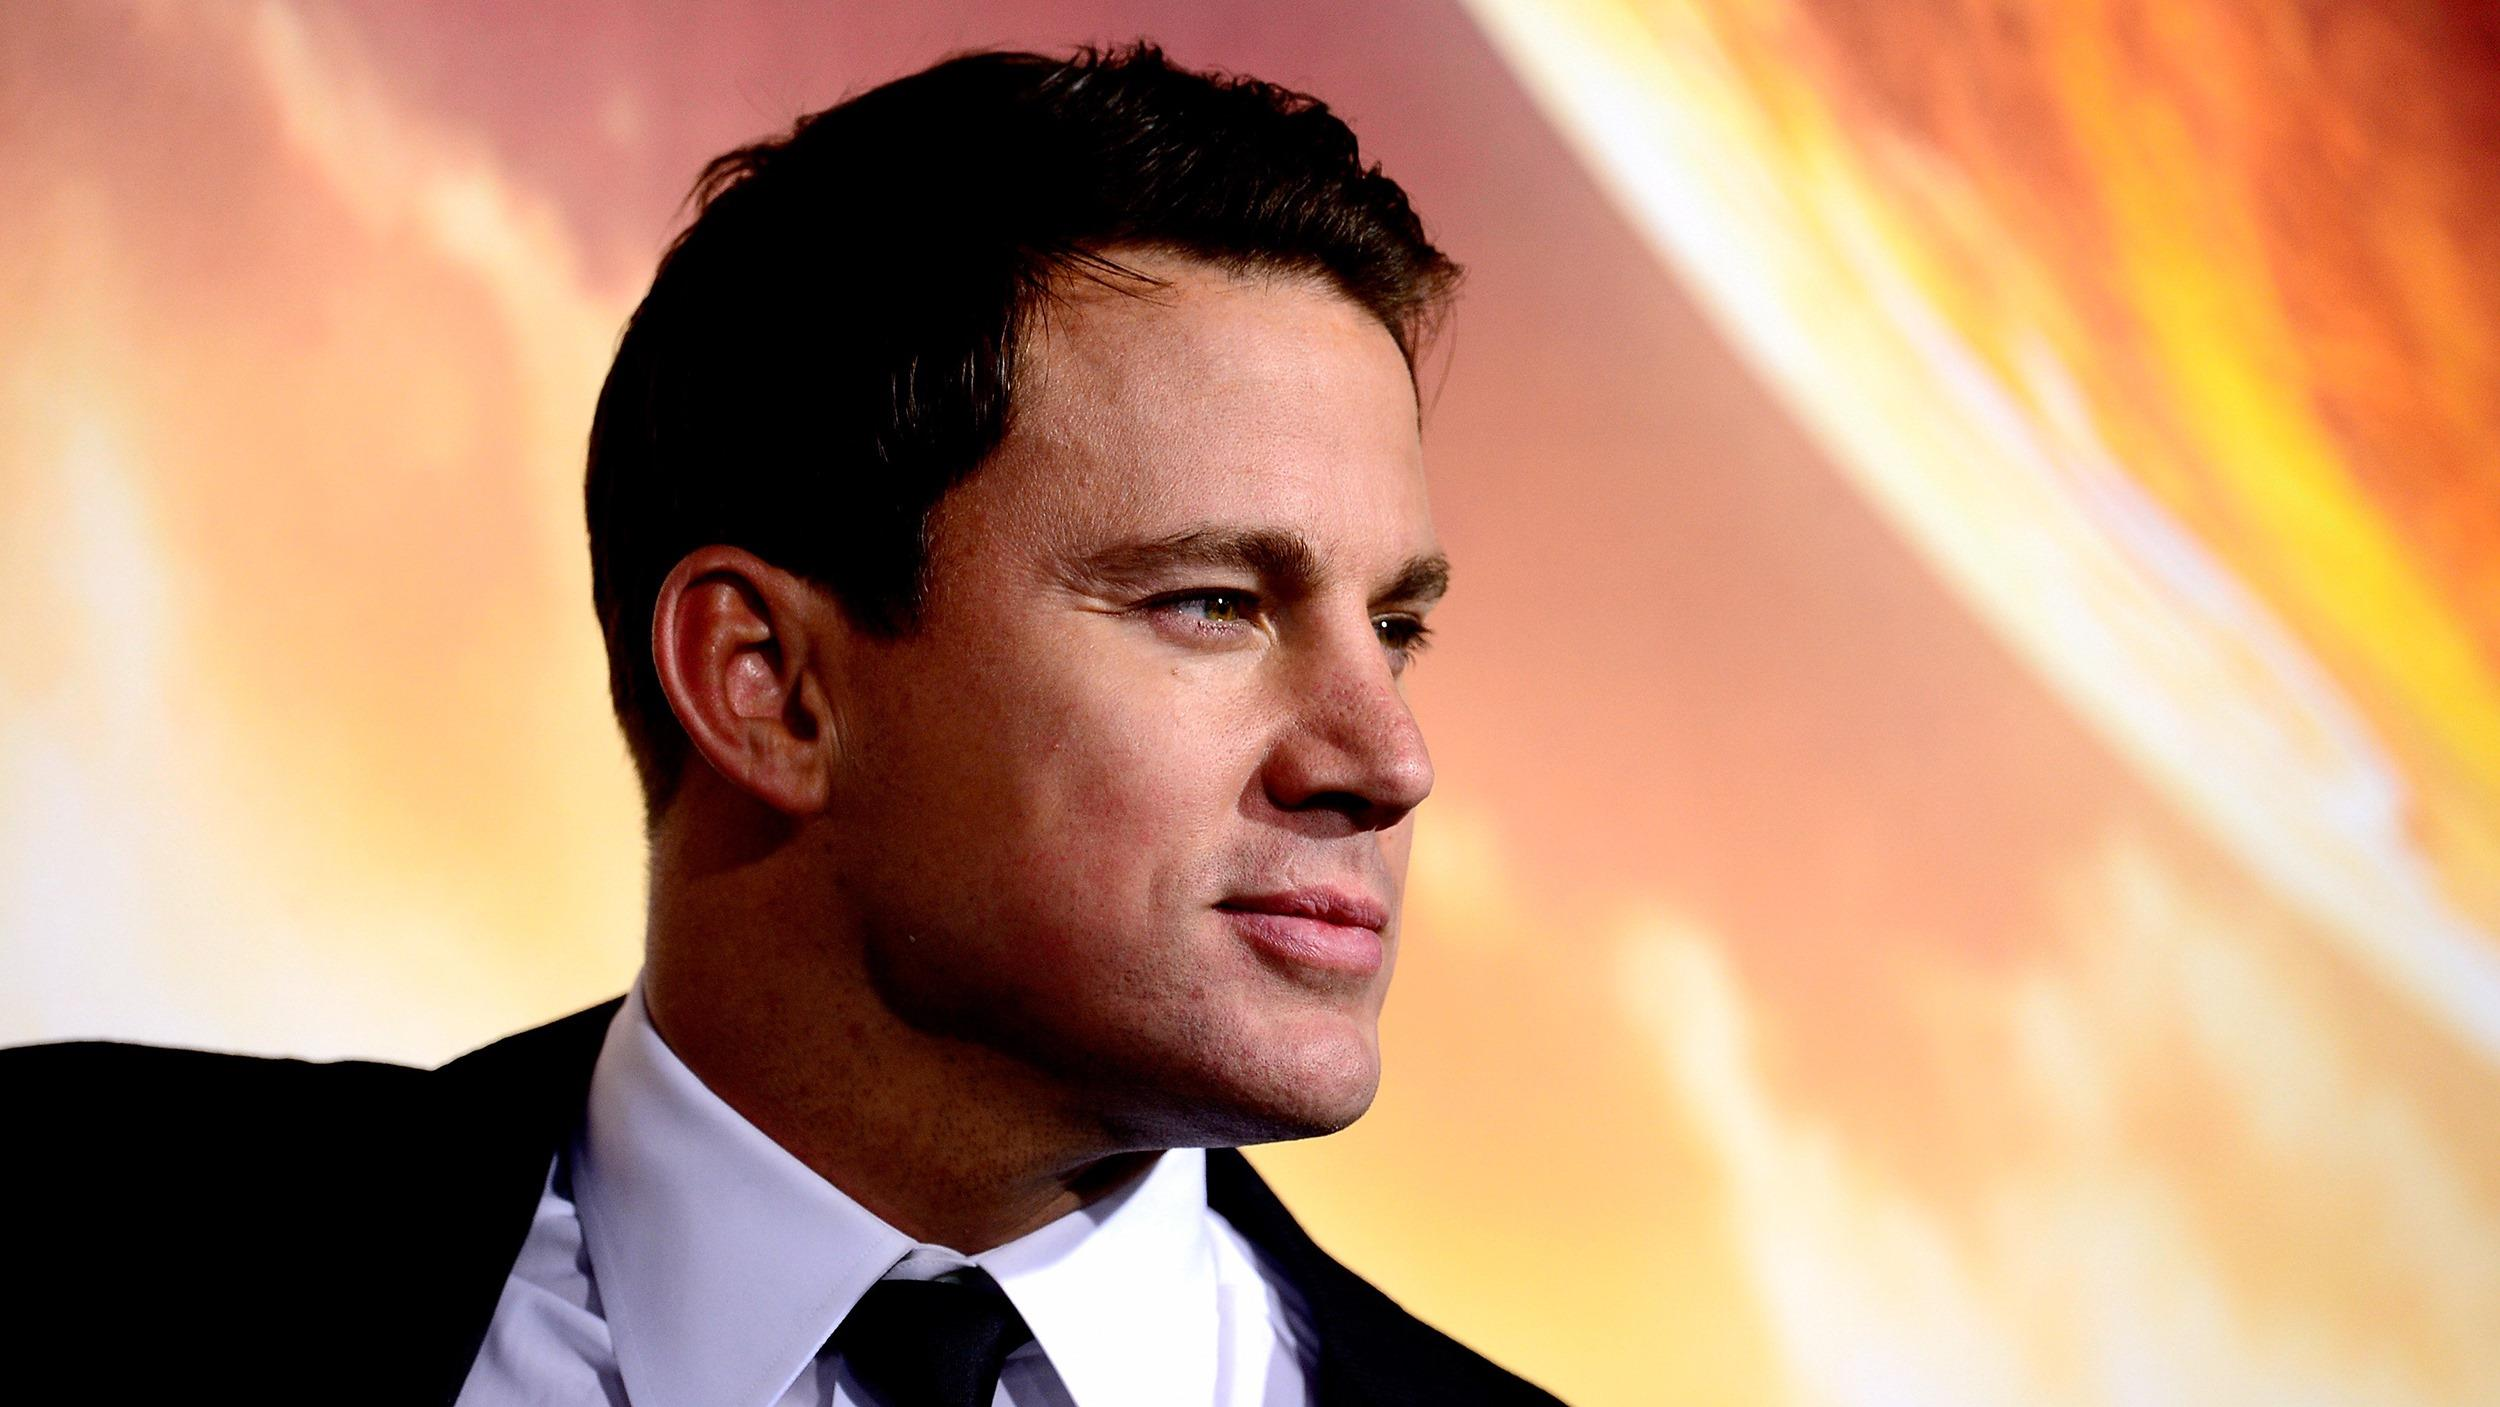 channing tatum - photo #14